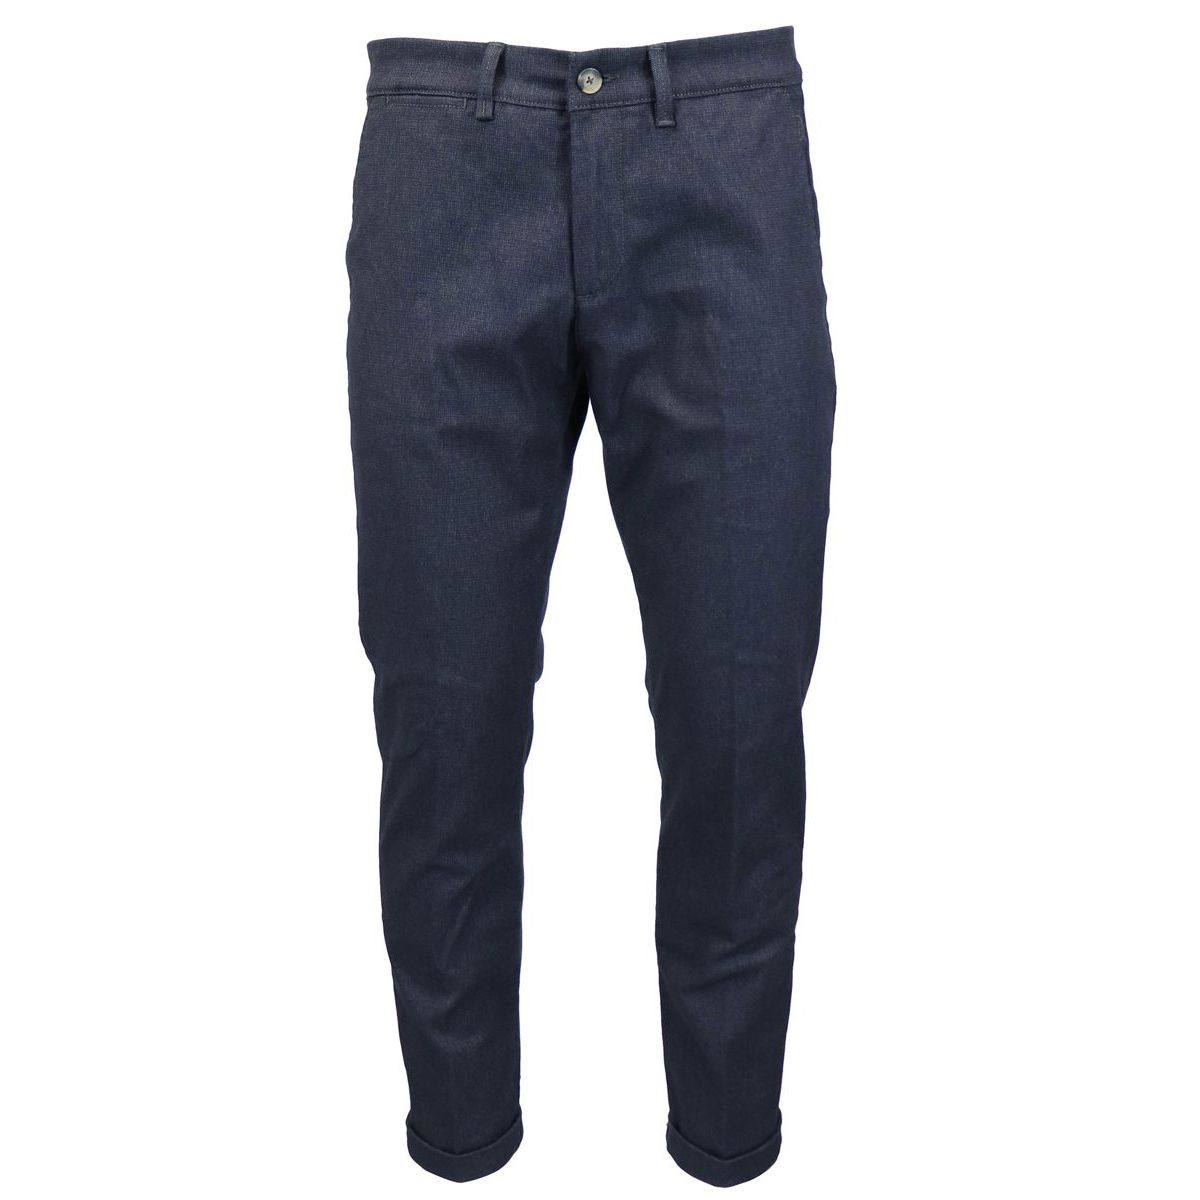 Slim cotton jeans with america pockets Dark denim Jeckerson